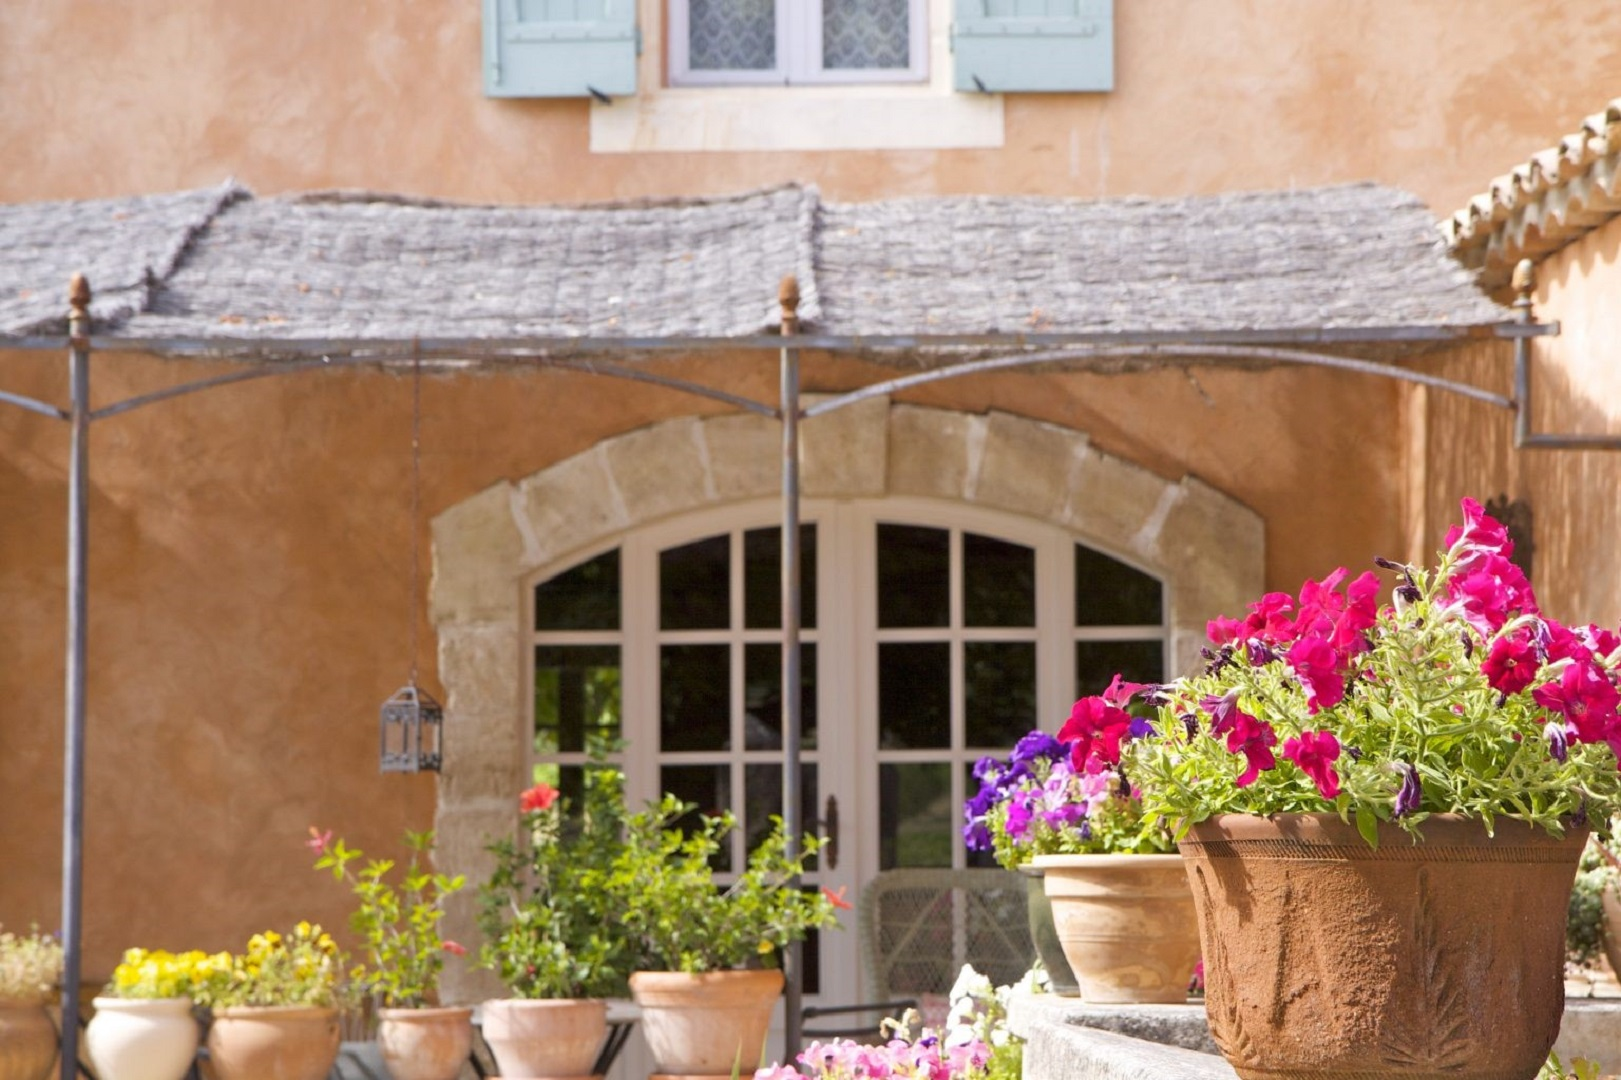 A close up of a flower garden in front of a building at Le Mas Perreal B&B en Luberon.